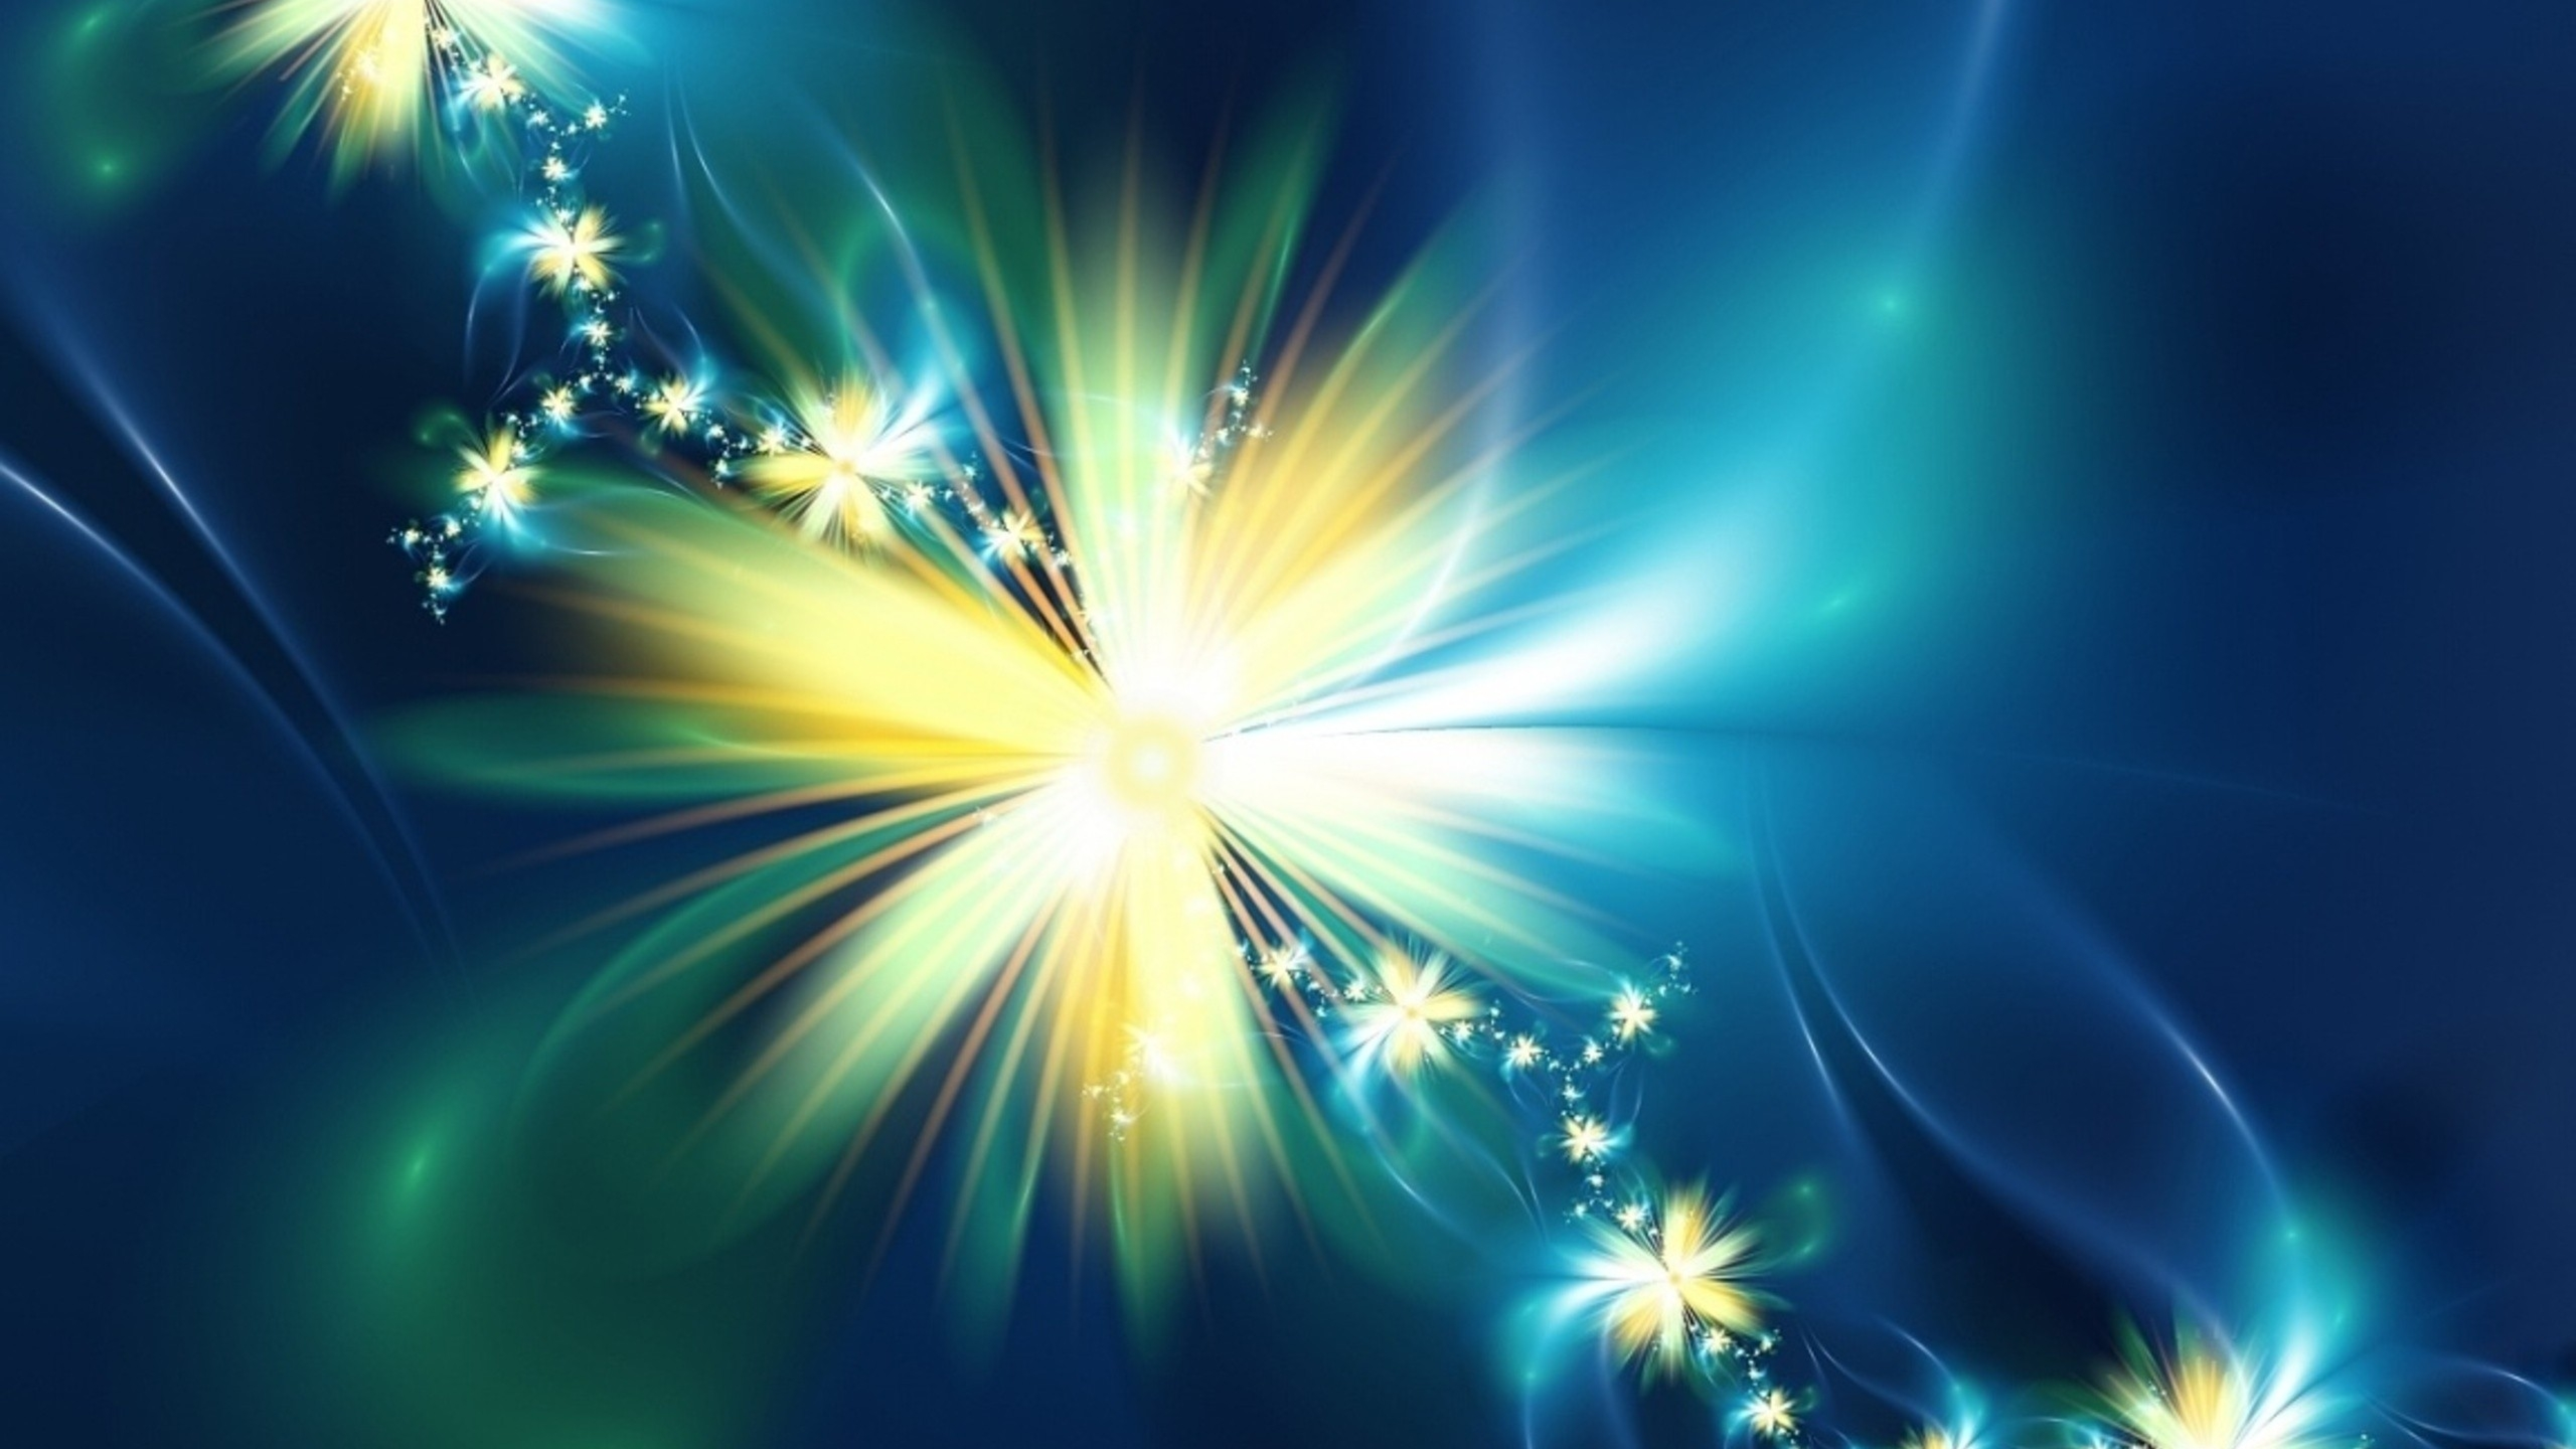 5120x2880 Shine Bright Light 5k Wallpaper Hd Abstract 4k Wallpapers Images Photos And Background